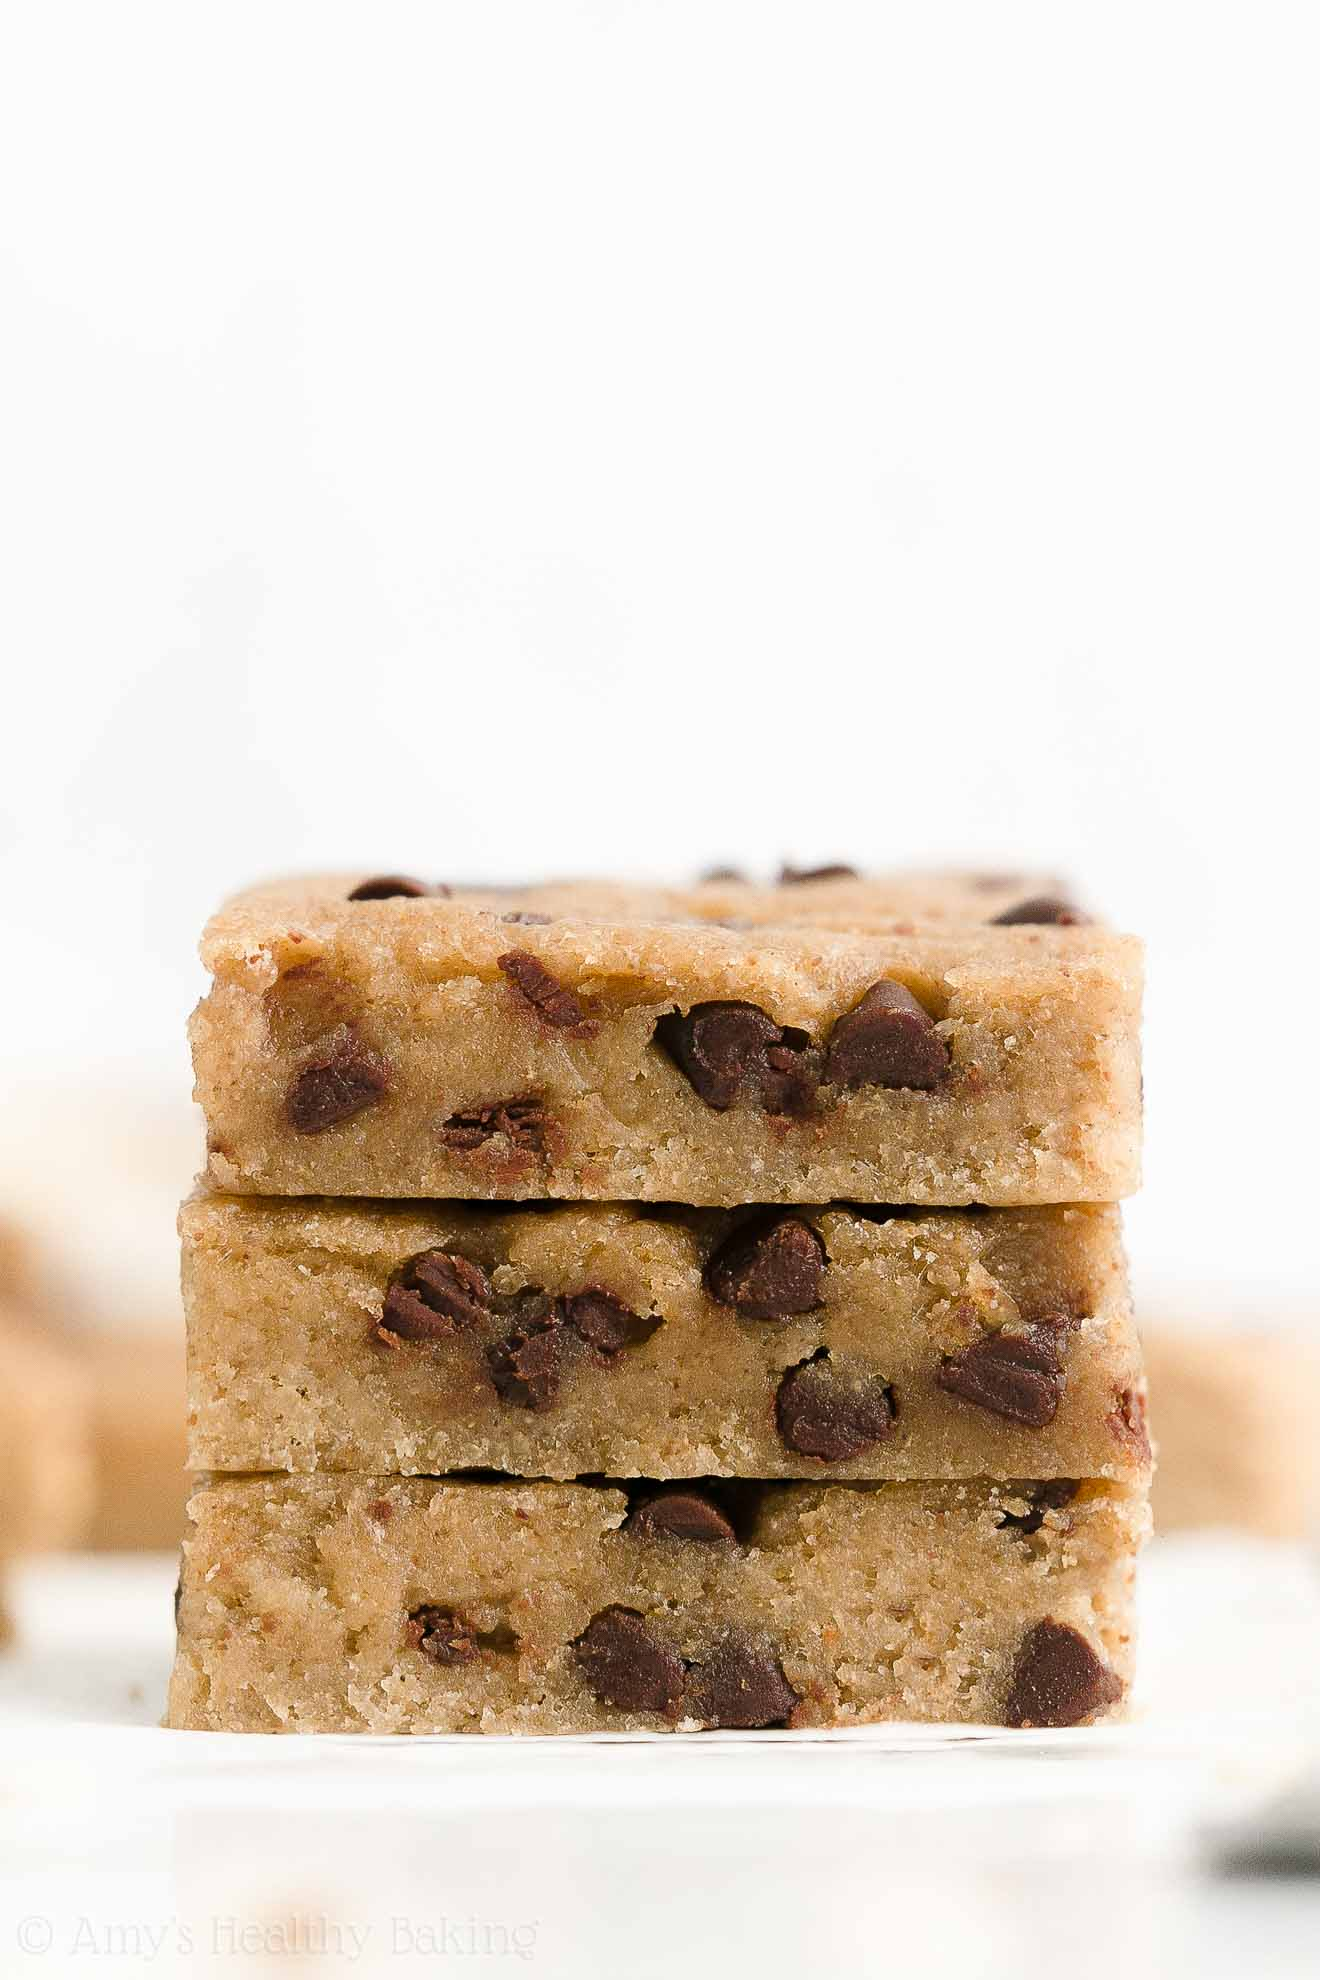 Healthy Low Calorie Gluten Free Vegan Chocolate Chip Almond Butter Cookie Bars